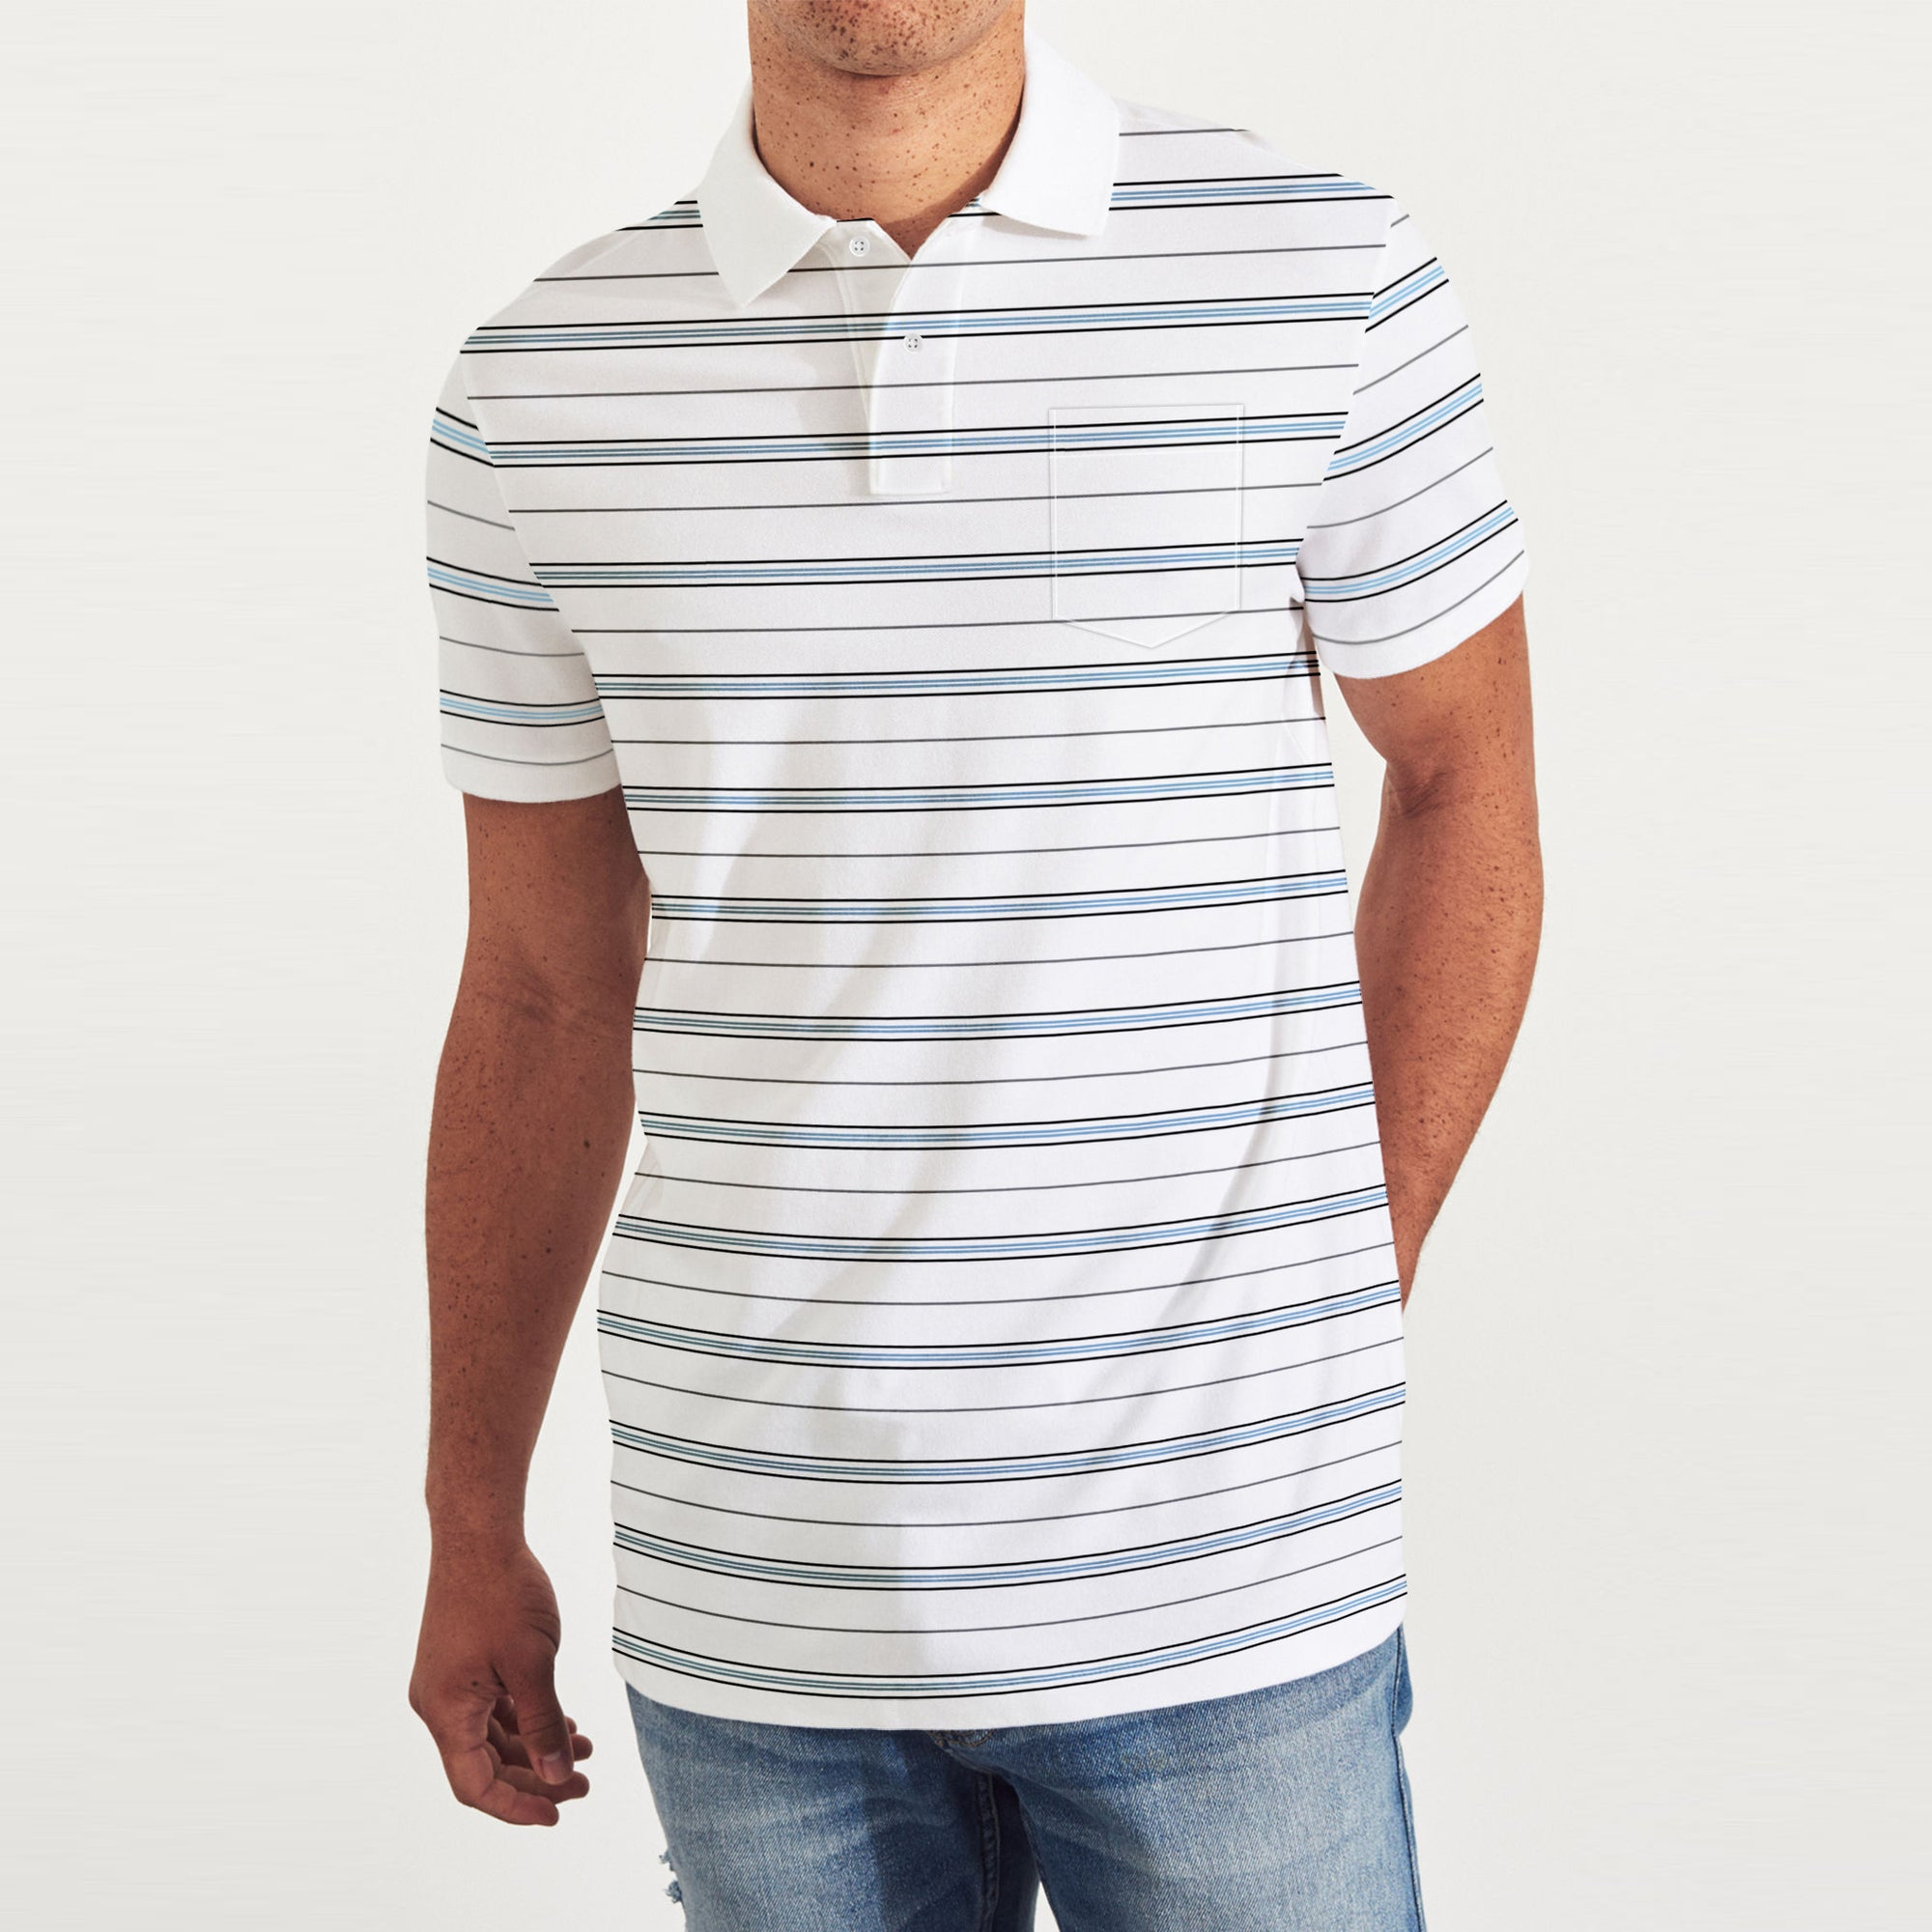 Covington Short Sleeve Single Jersey Polo Shirt For Men-White with Stripe-BE8388